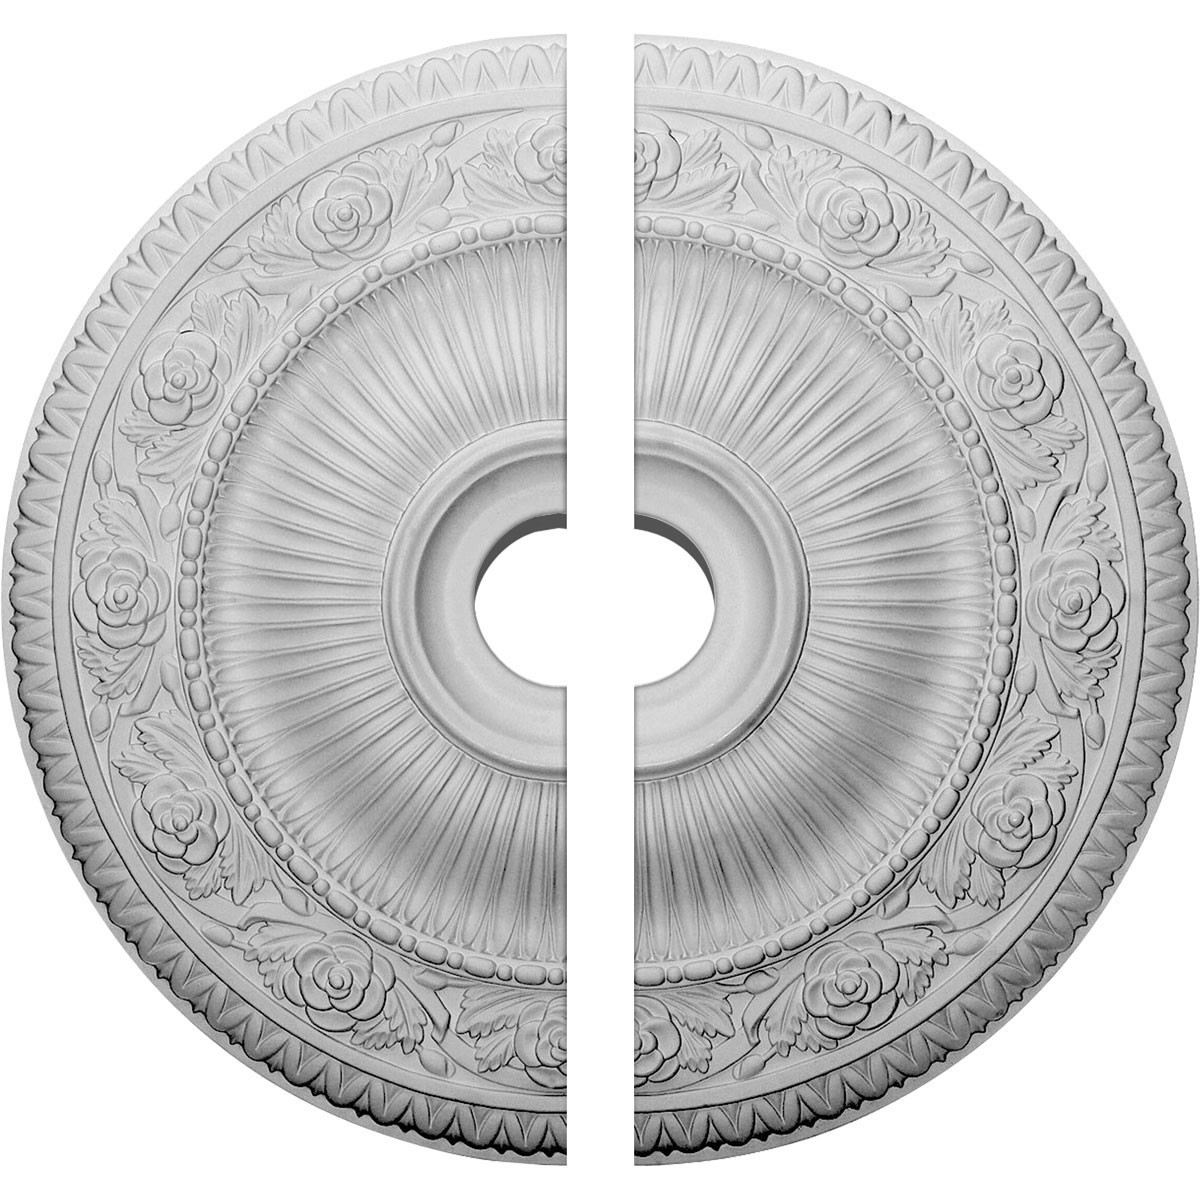 """EM-CM24LO12 - 24 1/4""""OD x 3 7/8""""ID x 2""""P Logan Ceiling Medallion, Two Piece (Fits Canopies up to 6 1/8"""")"""